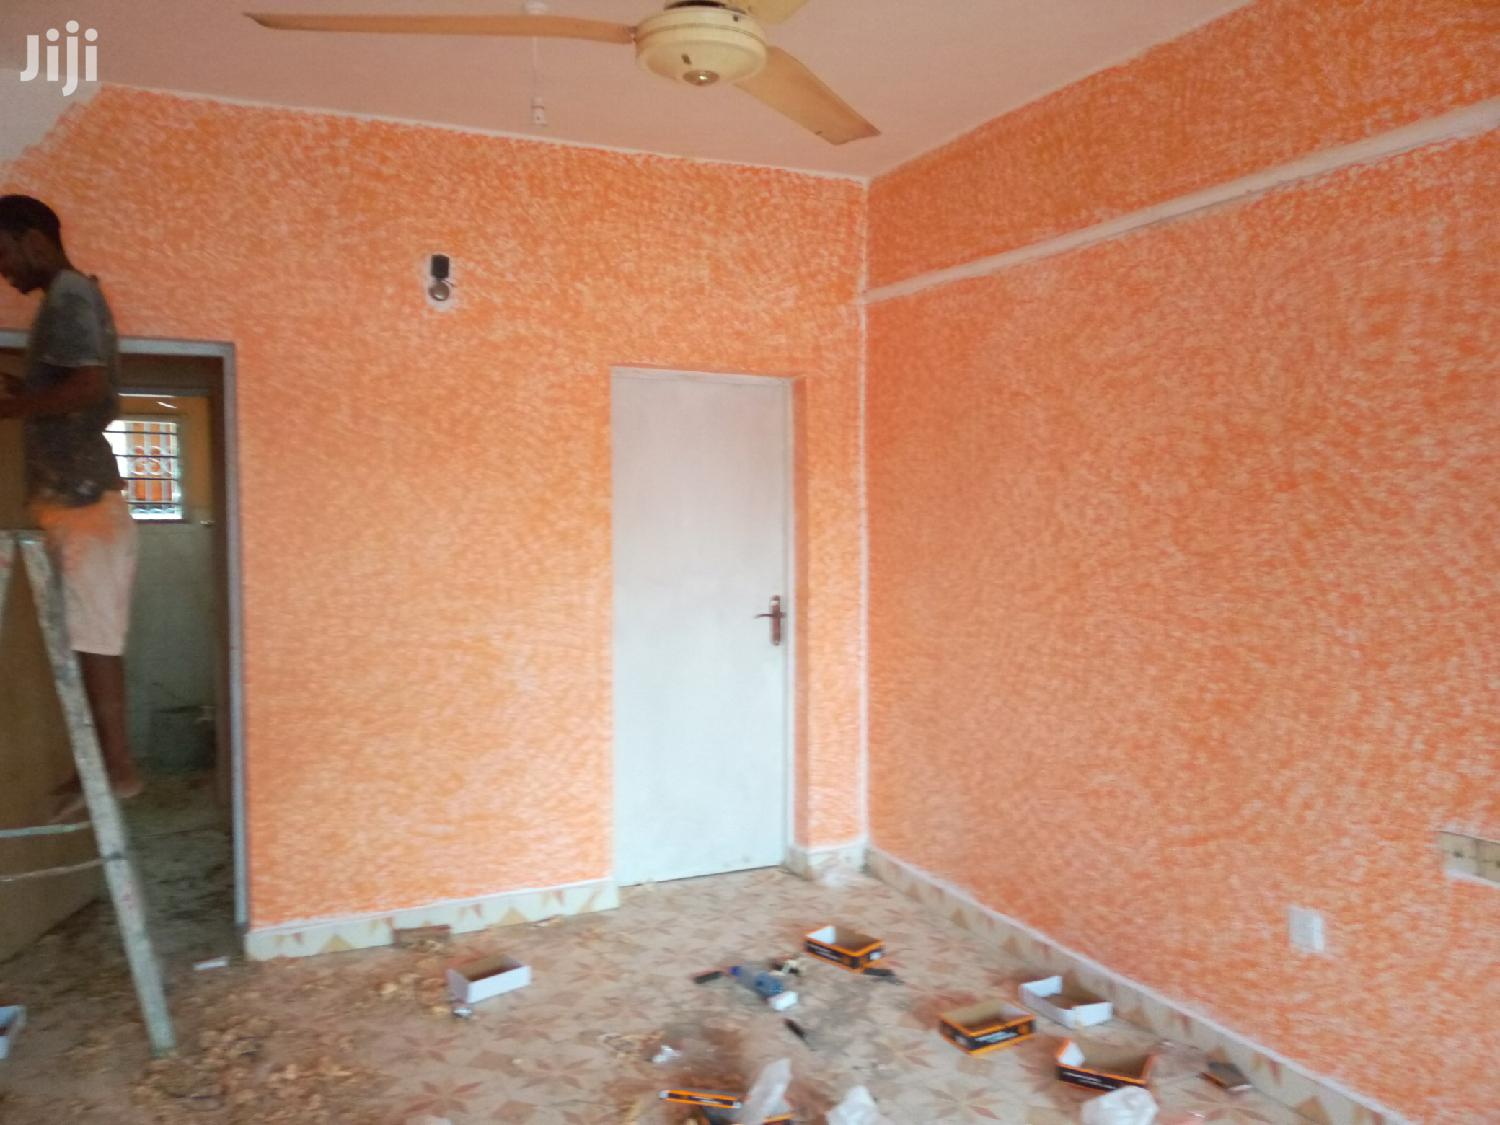 Quick Sale House | Houses & Apartments For Sale for sale in Jomvu, Mombasa, Kenya